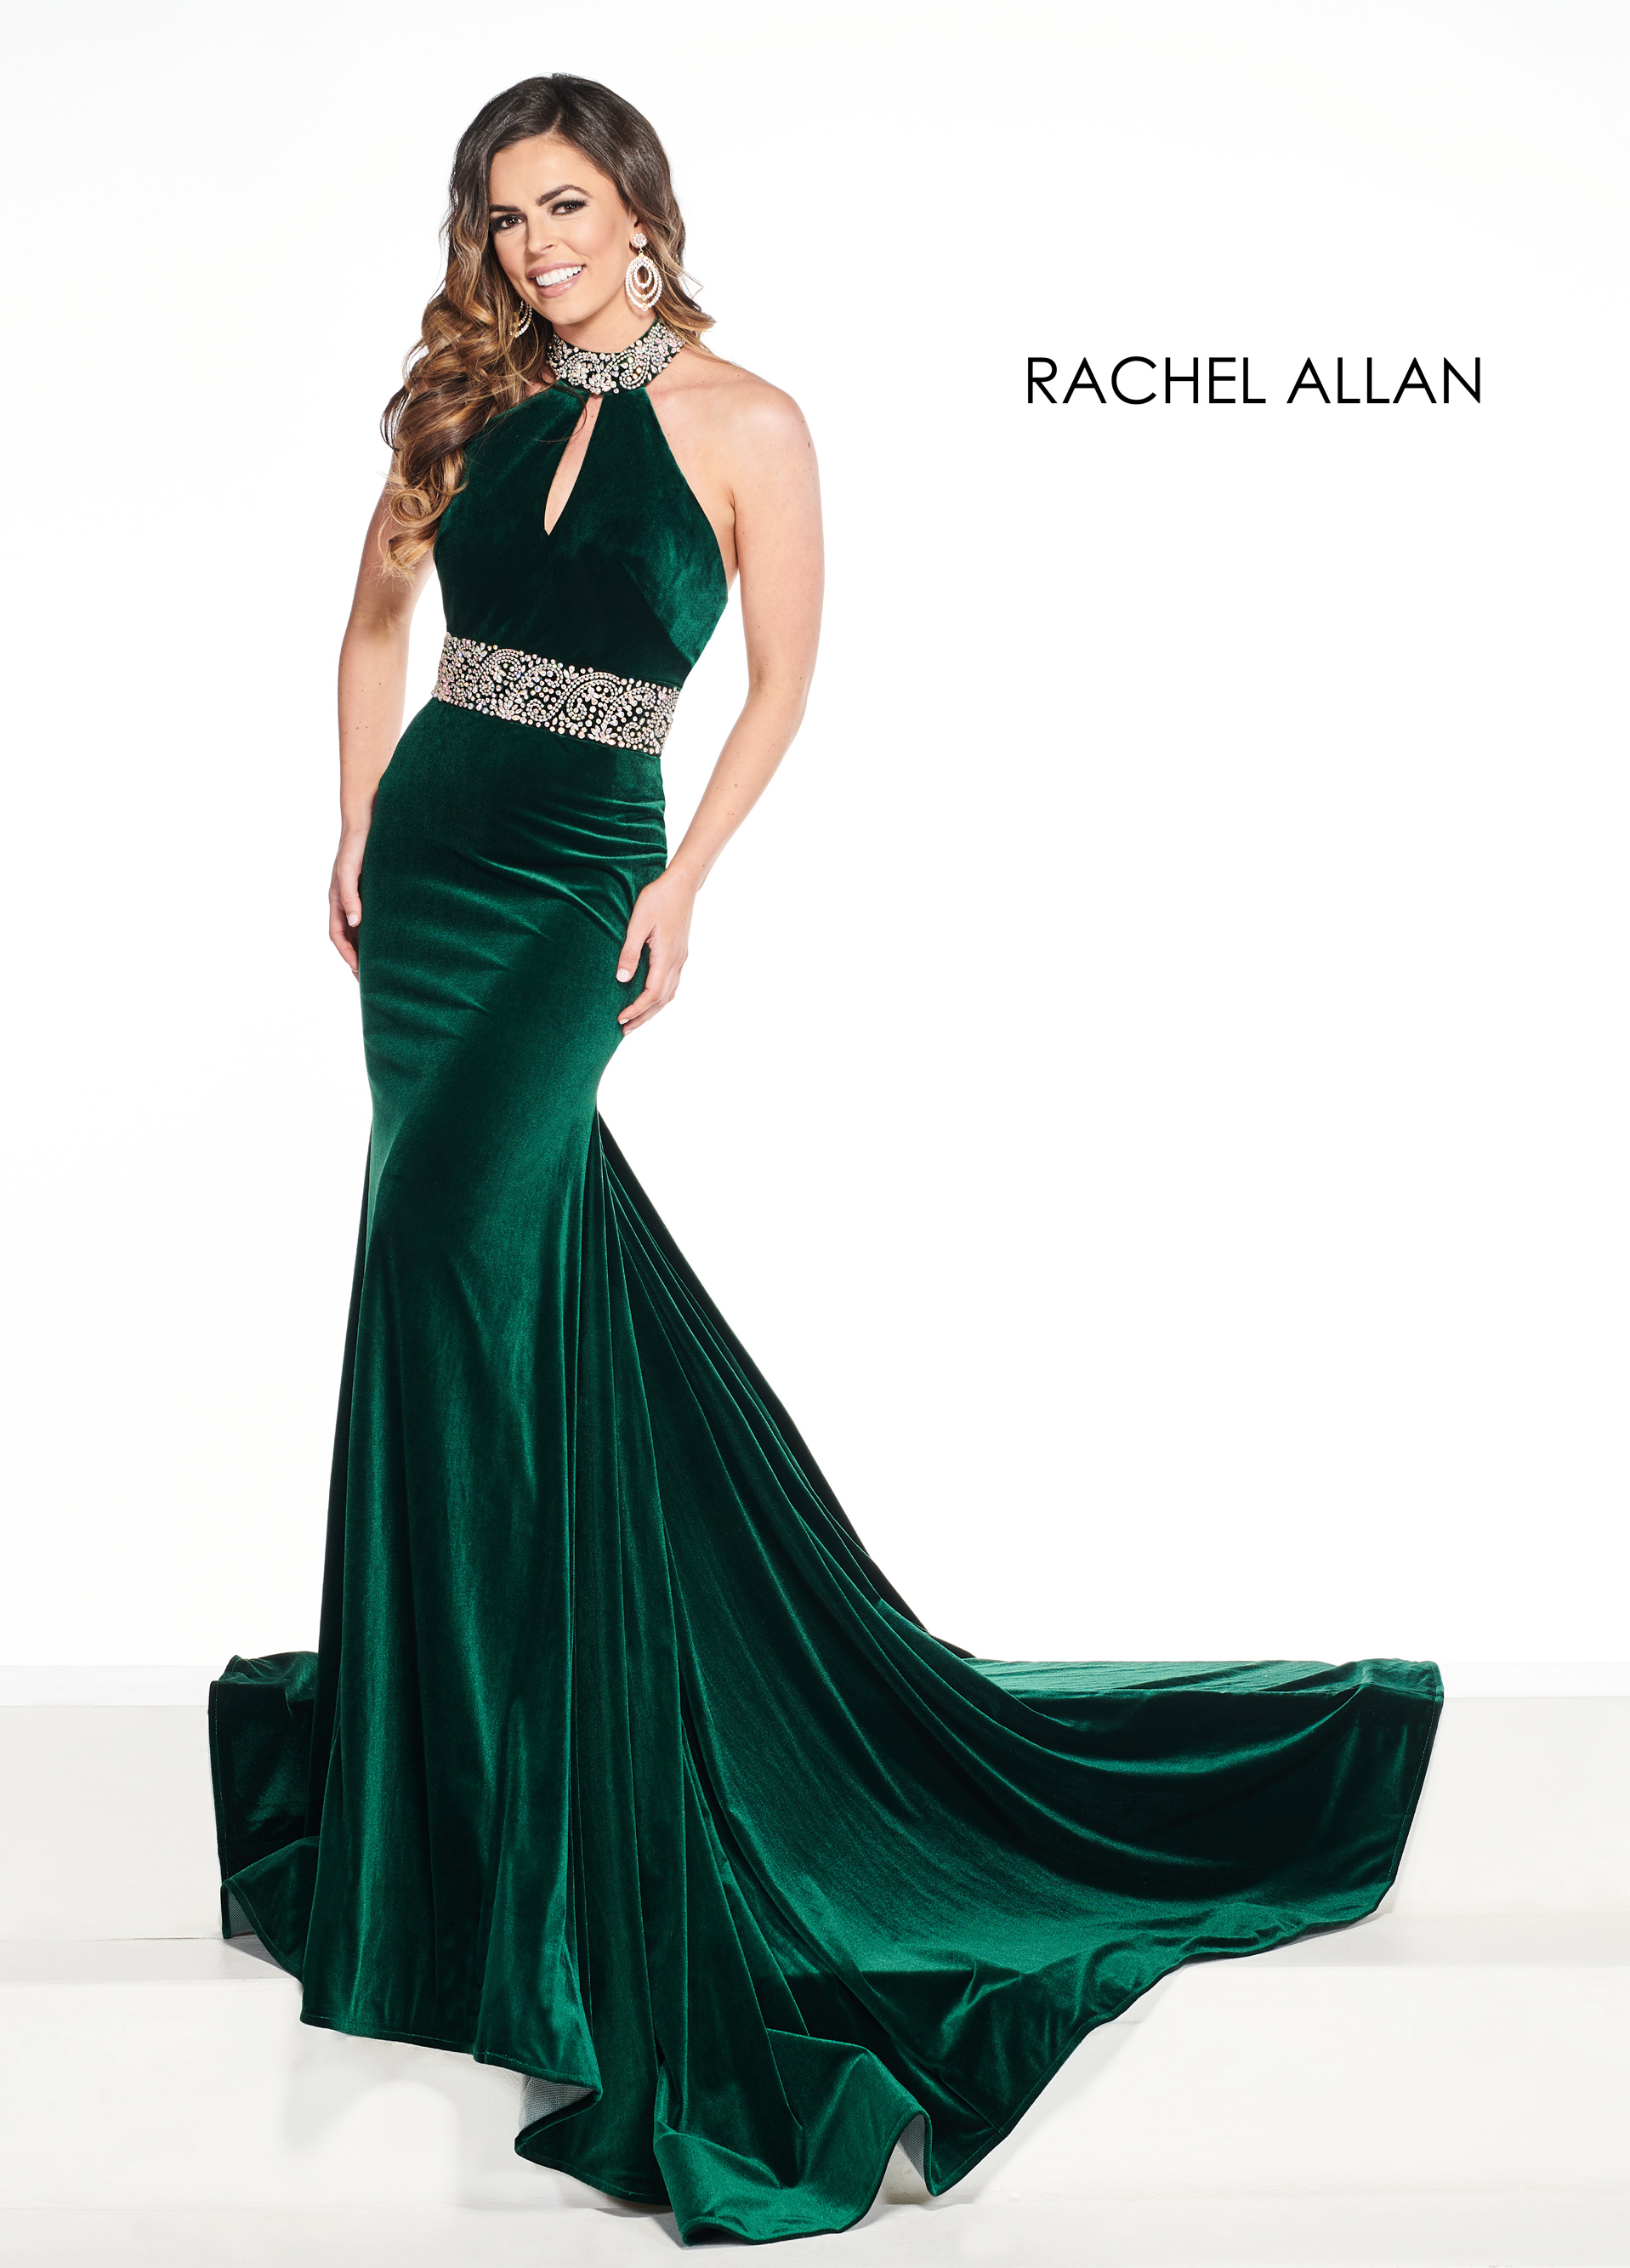 Halter Fit & Flare Pageant Dresses in Green Color